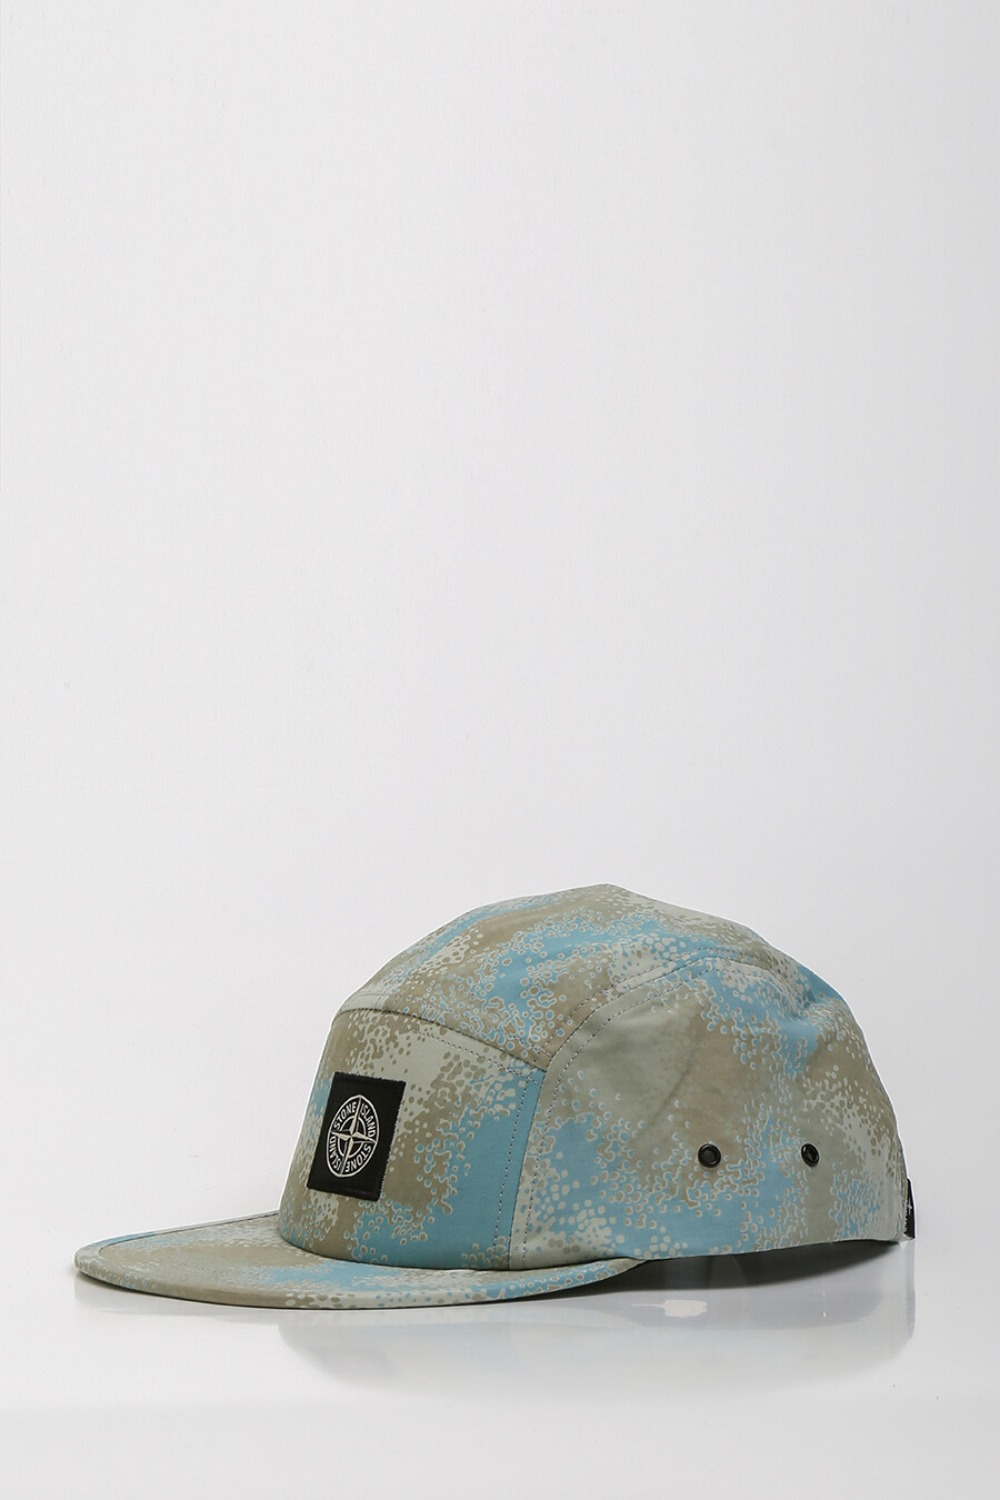 CAMO DEVORE FIVE-PANEL CAP(990EE)